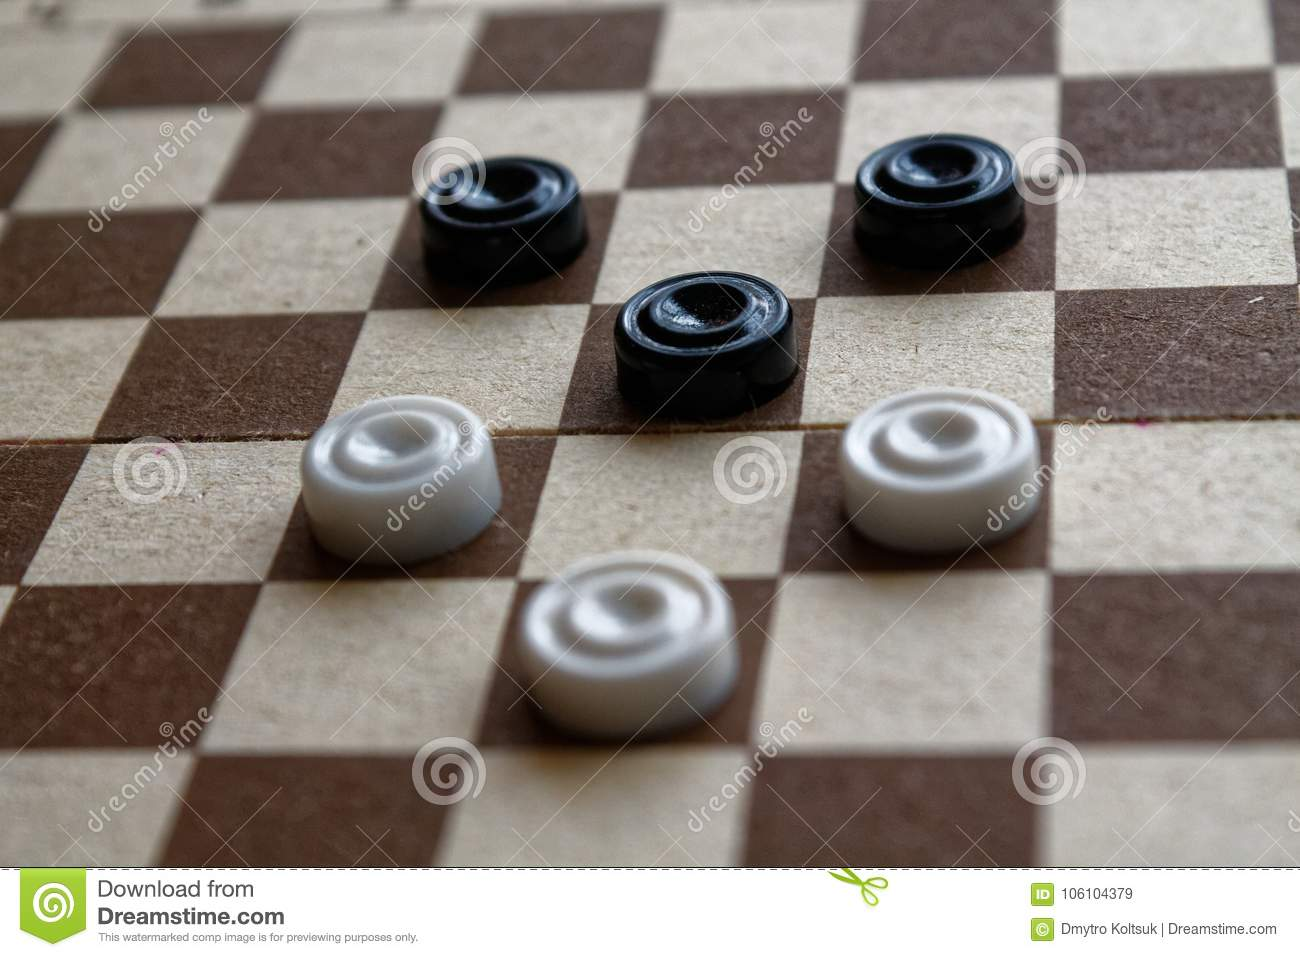 Checkers in checkerboard reday for playing. Game concept. Board game. Hobby. checkers on the playing field for a game.